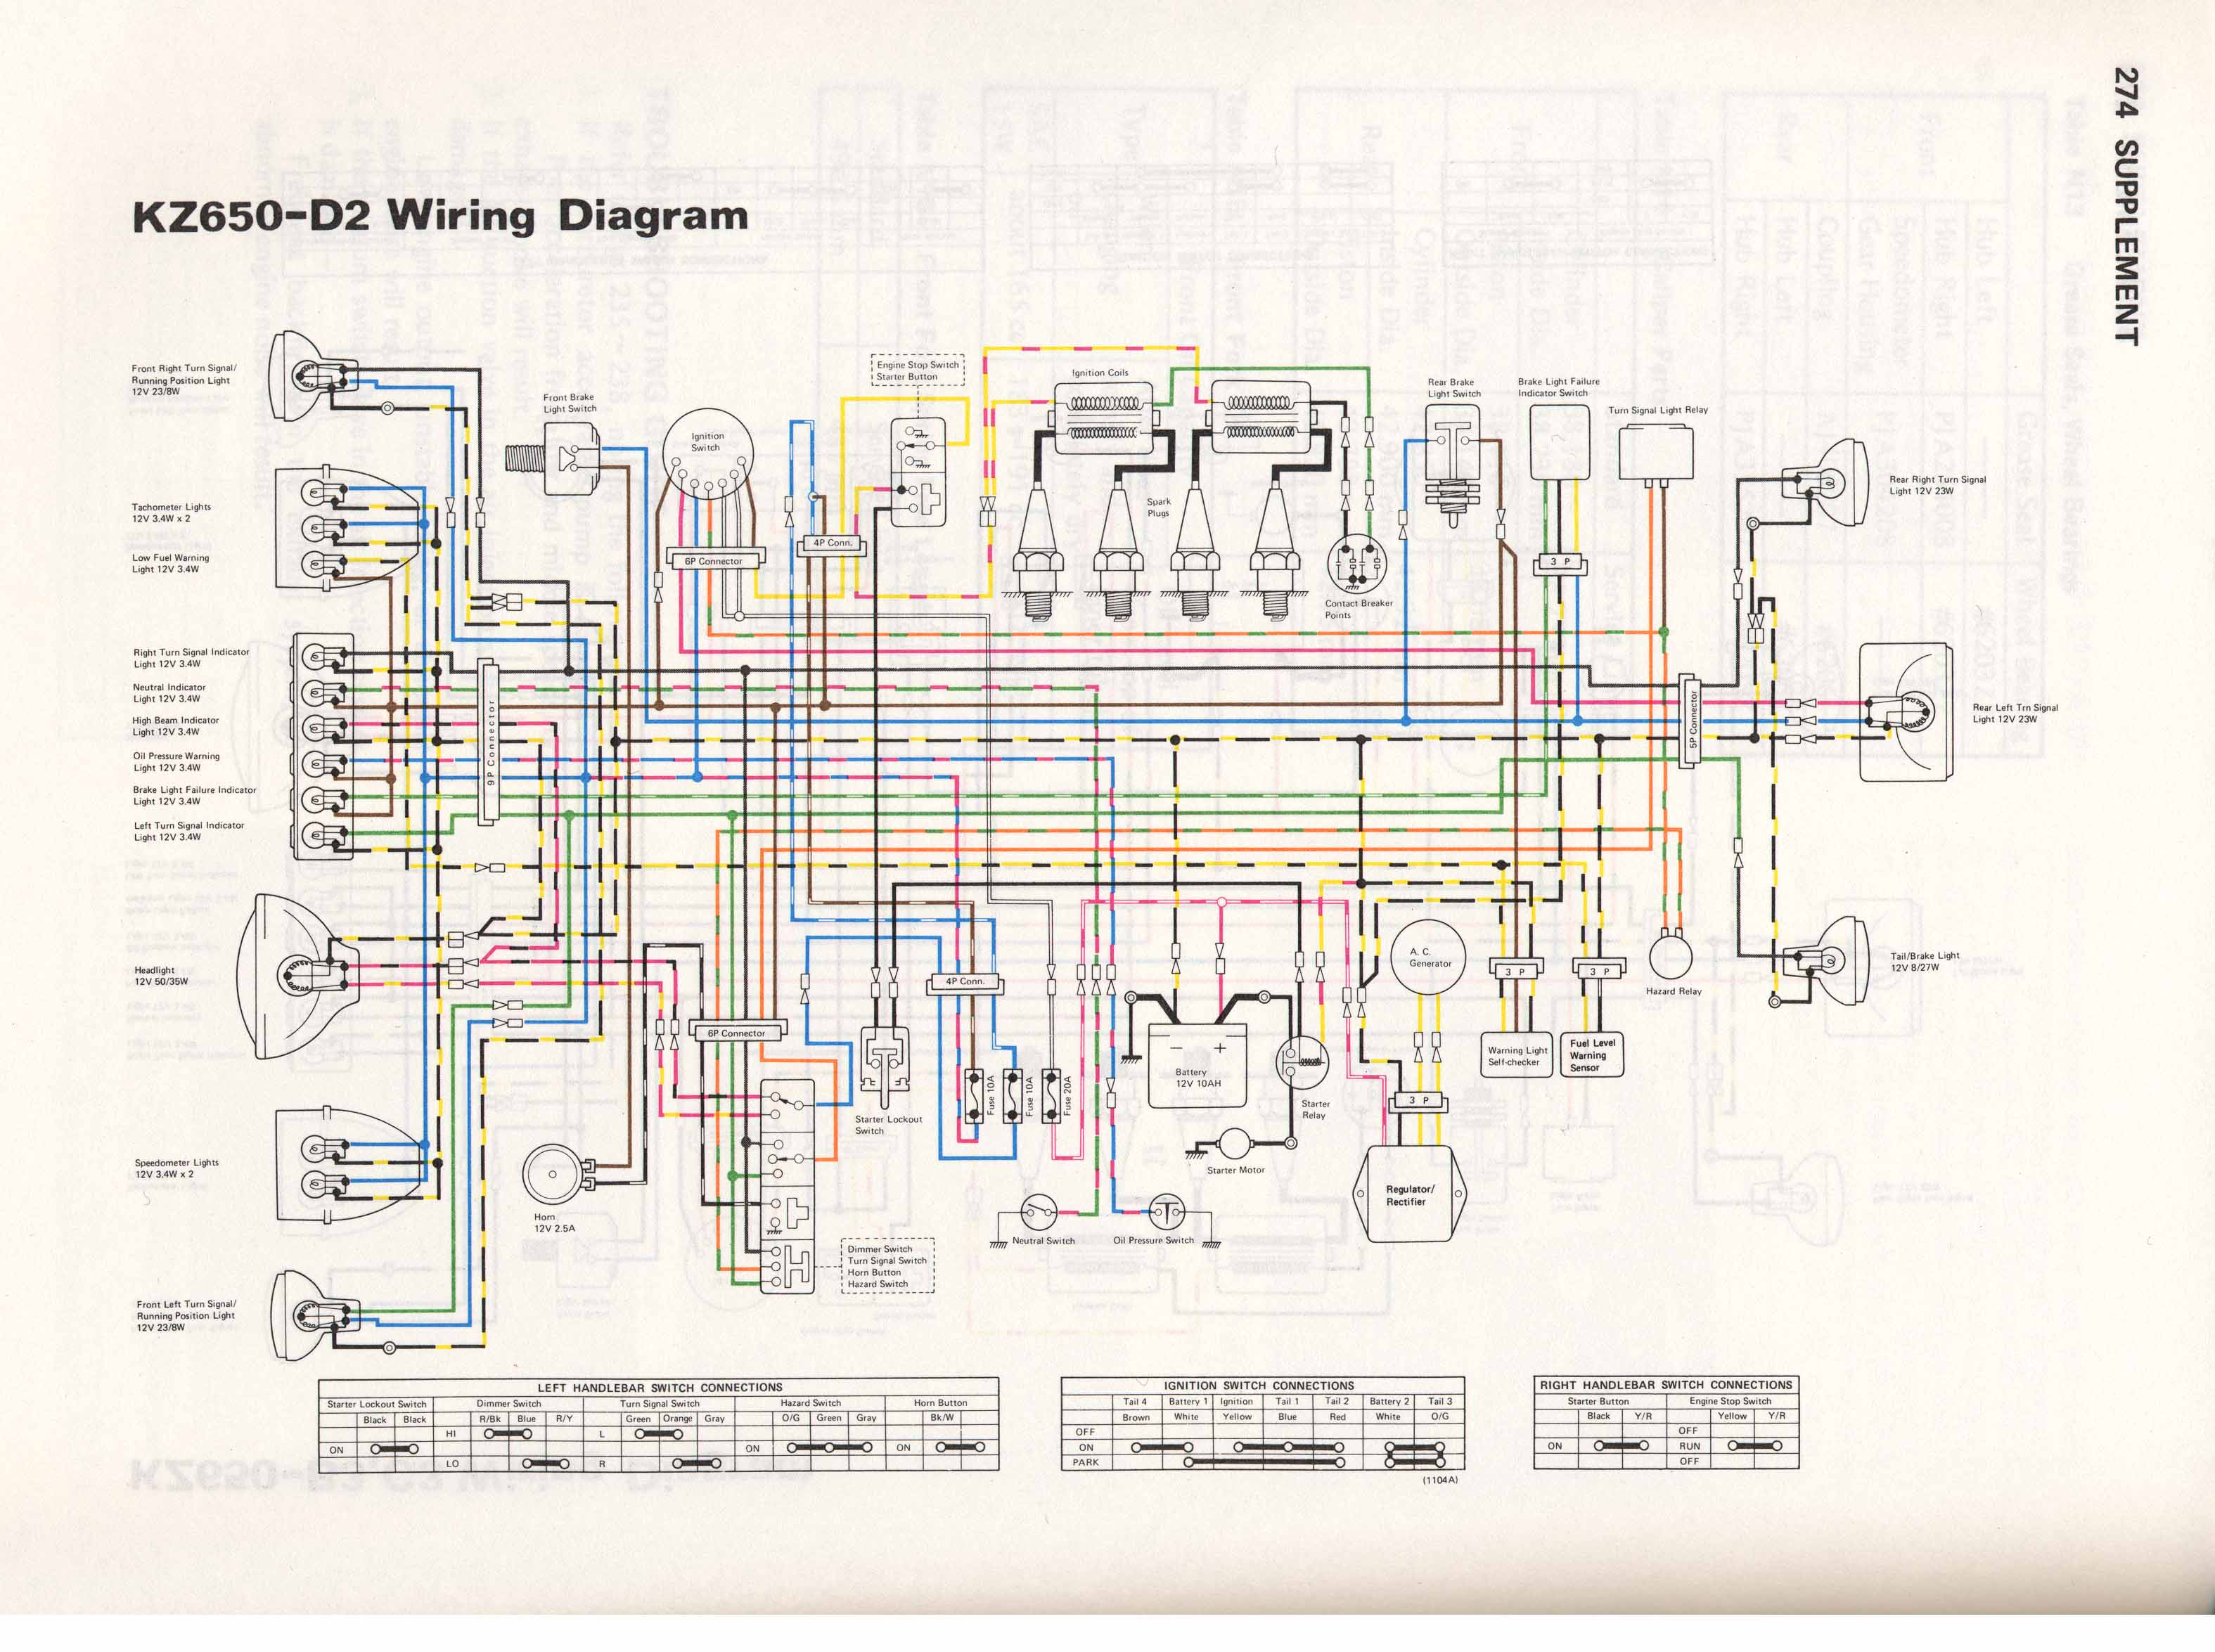 Yamaha Dt 175 Wiring Diagram Libraries 1979 Kawasaki Kz1000 Diagrams Schema78 B2 Schematic Data